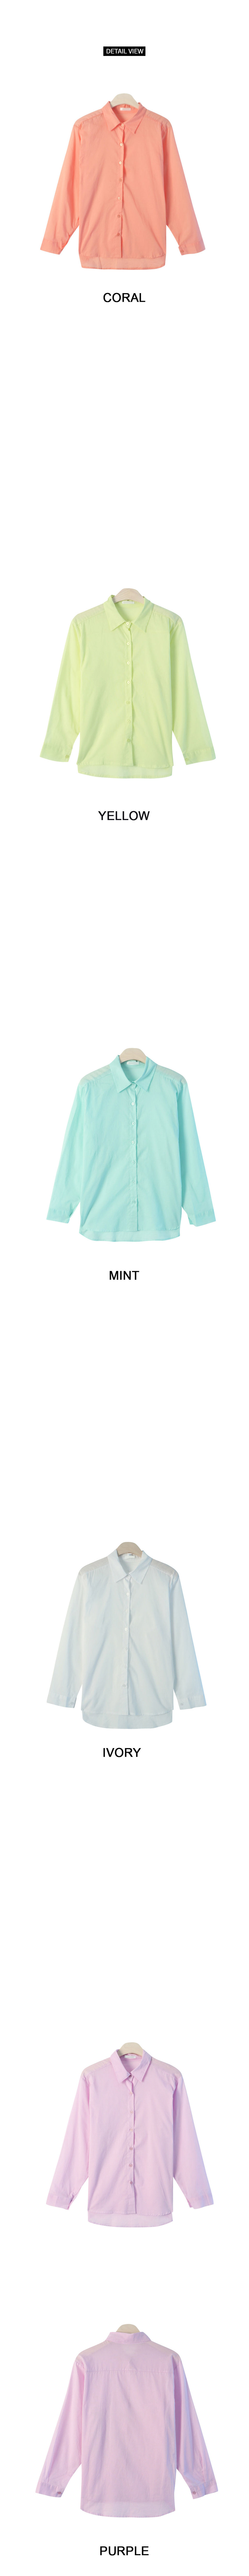 Ice cream color long-sleeved shirt